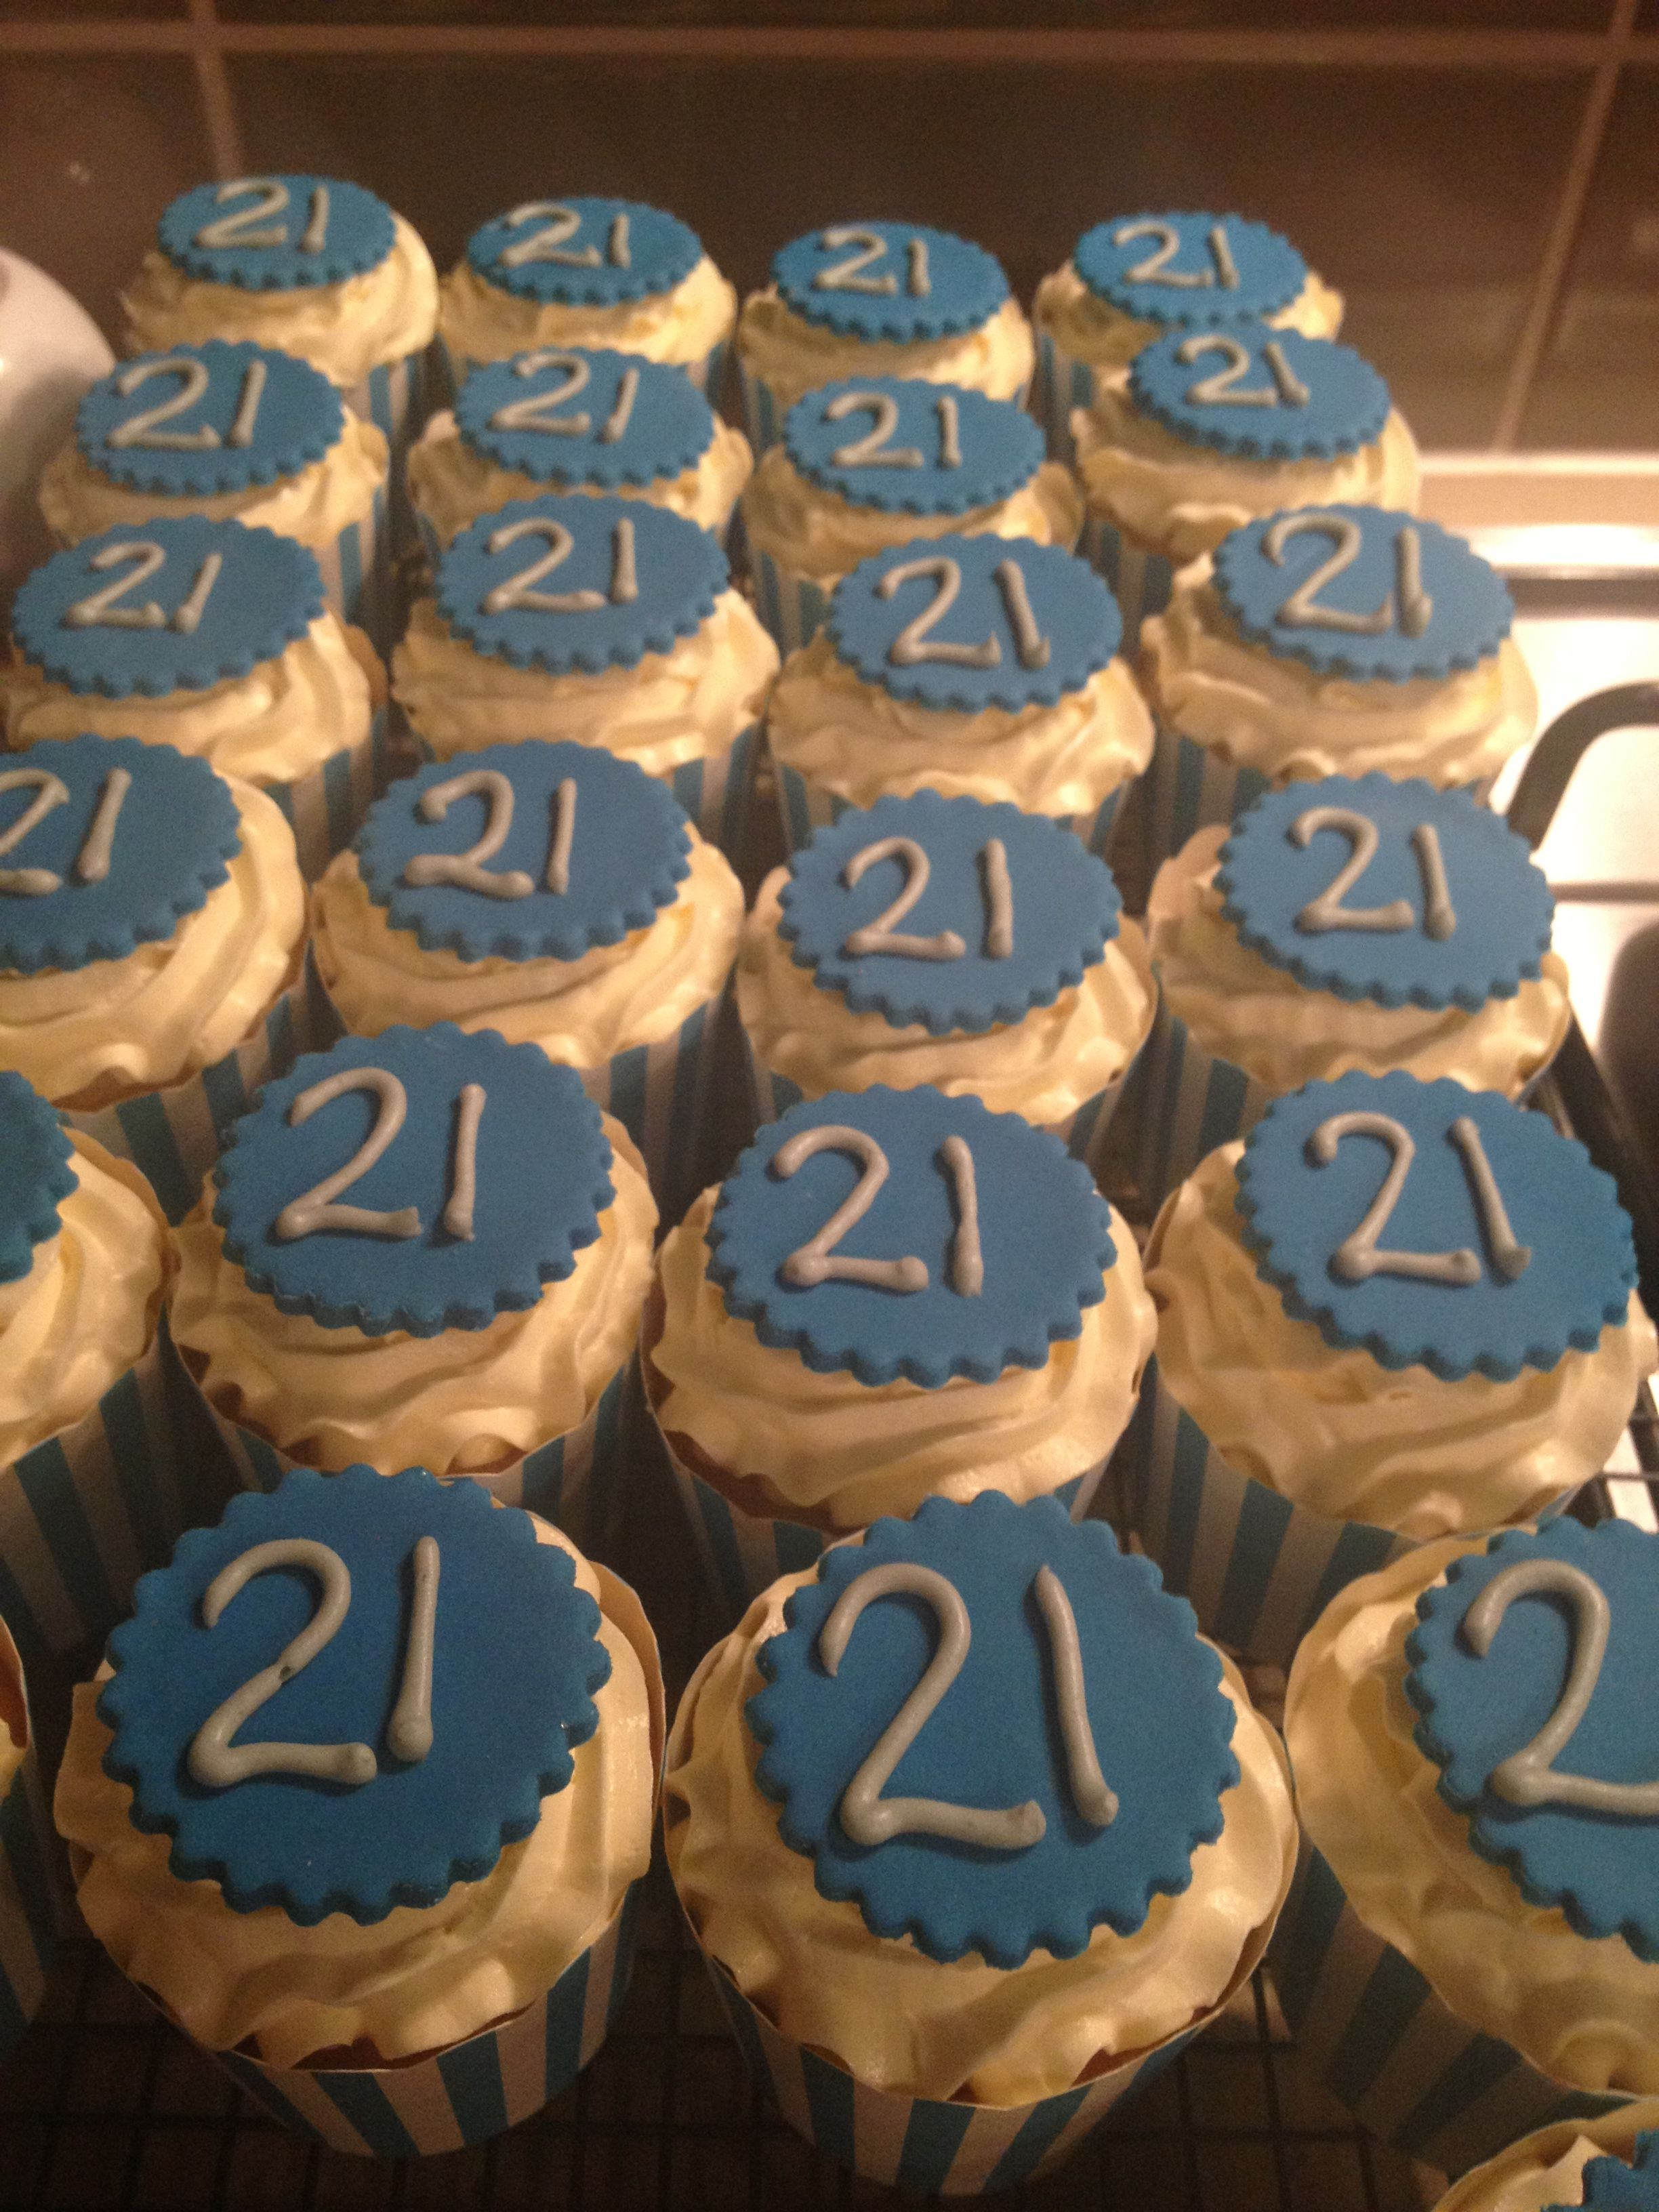 21st birthday cake toppers personalised